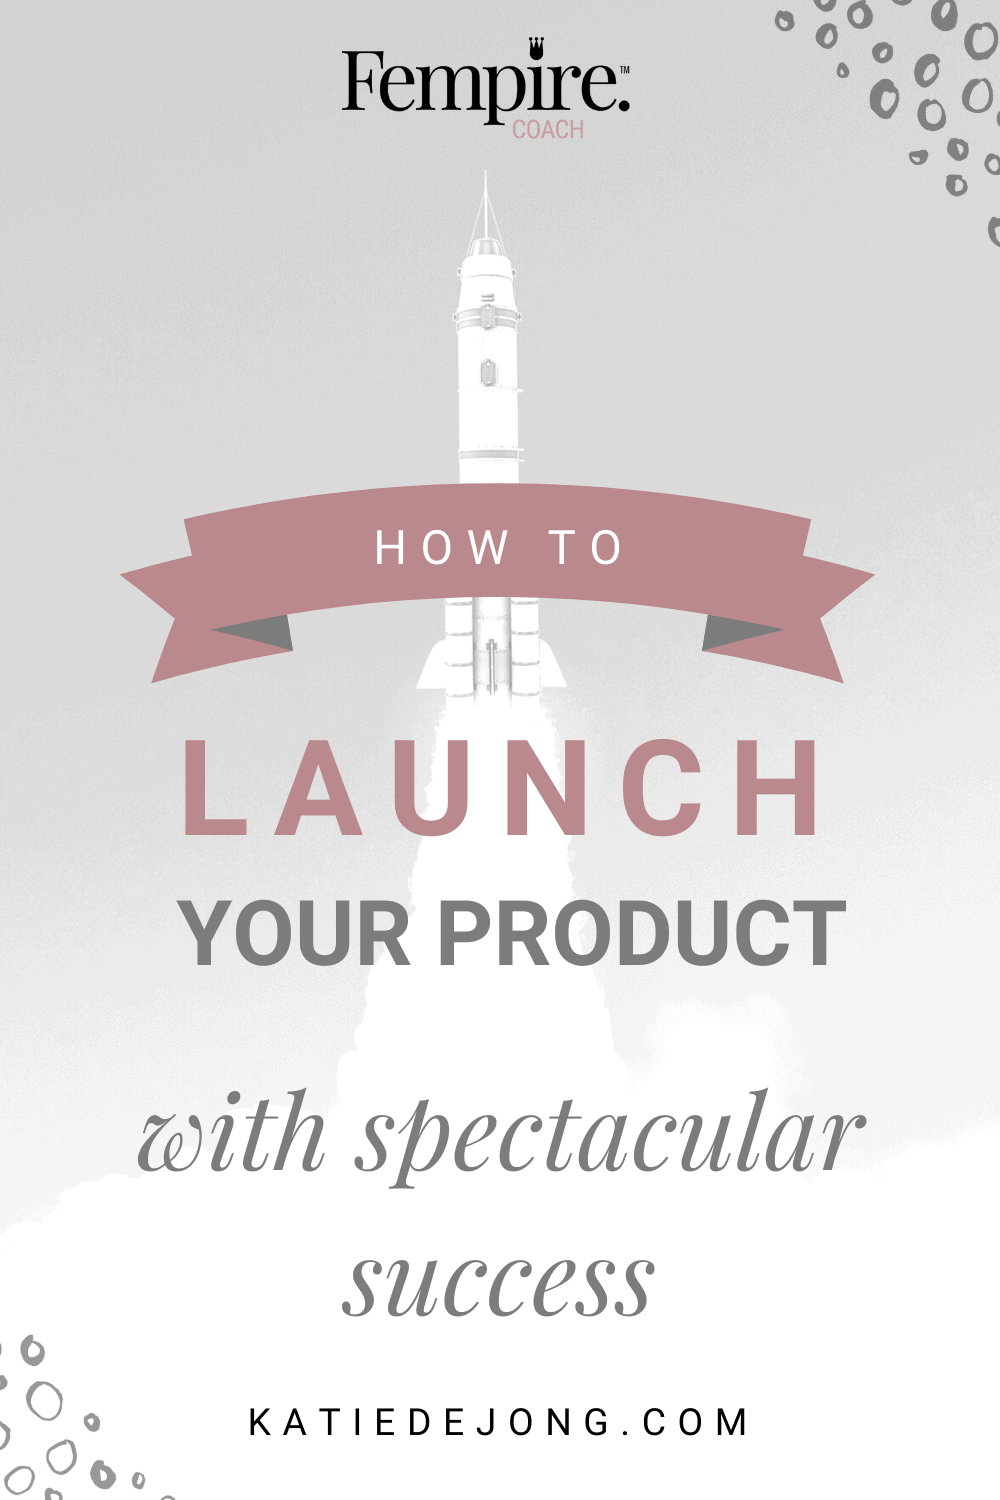 Have you ever tried to launch something and it flopped? Did you follow a proven launch formula? If not, read on to discover the exact steps you need to take to generate huge sales from a launch! #fempire #entrepreneur #launch #productlaunch #businesscoach #womeninbusiness #fempirecoach #launchformula #ladyboss